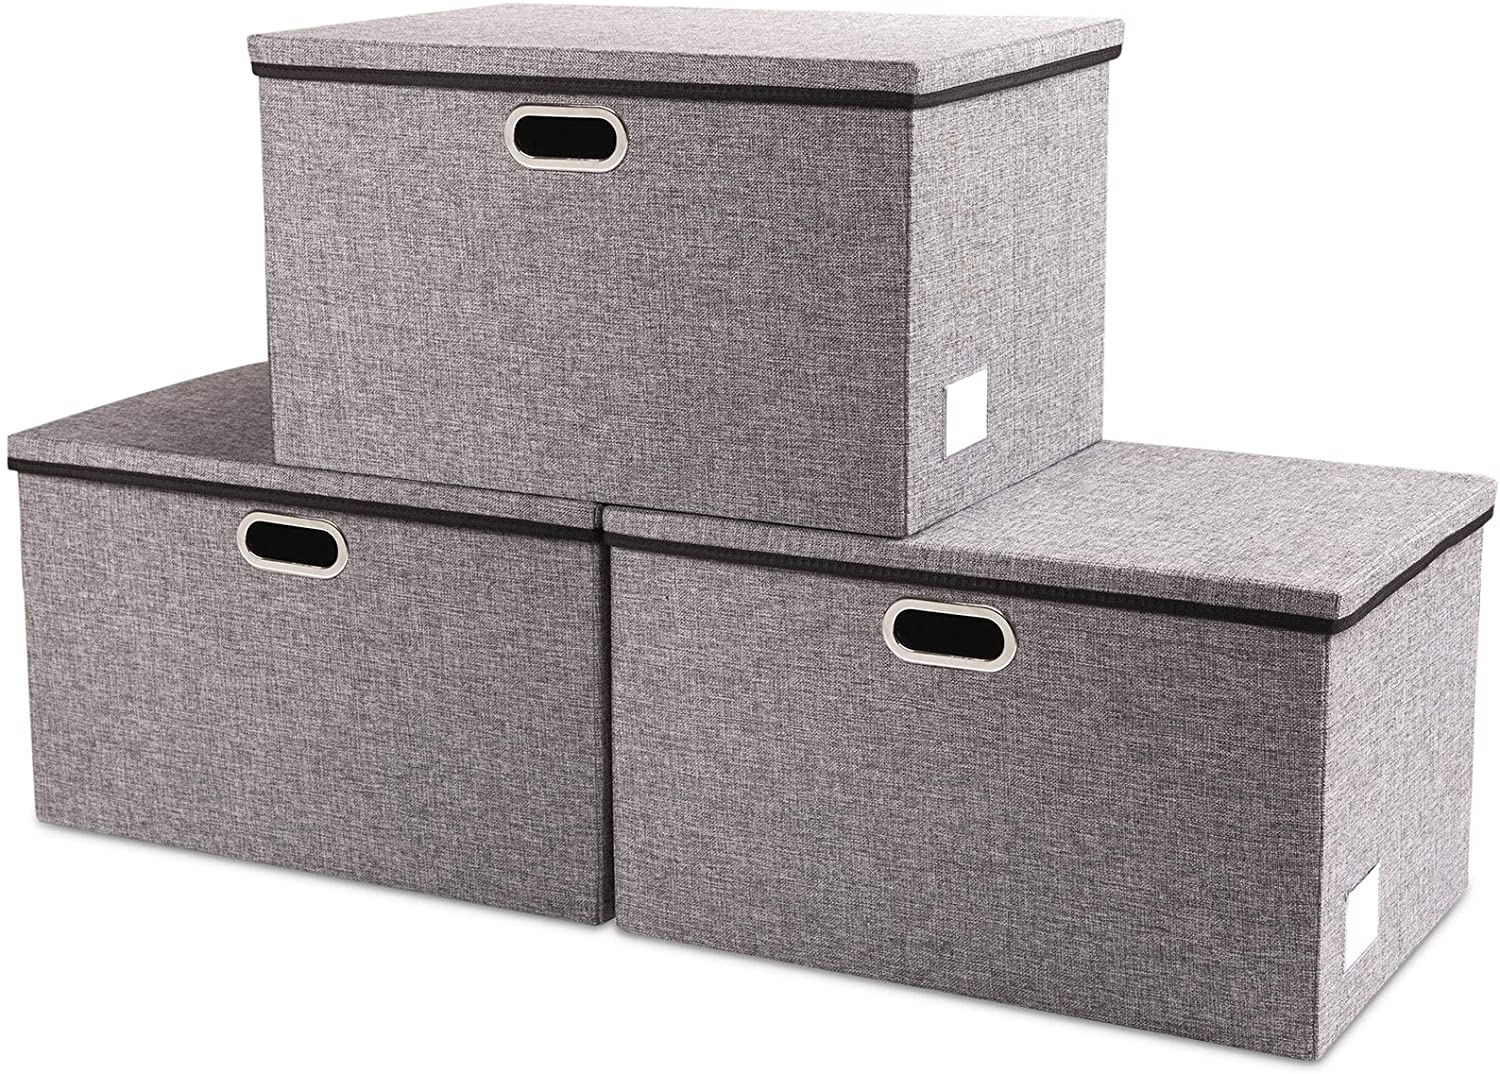 Prandom Extra Large Collapsible latest Max 73% OFF Storage Bins 3-Pack with Lids